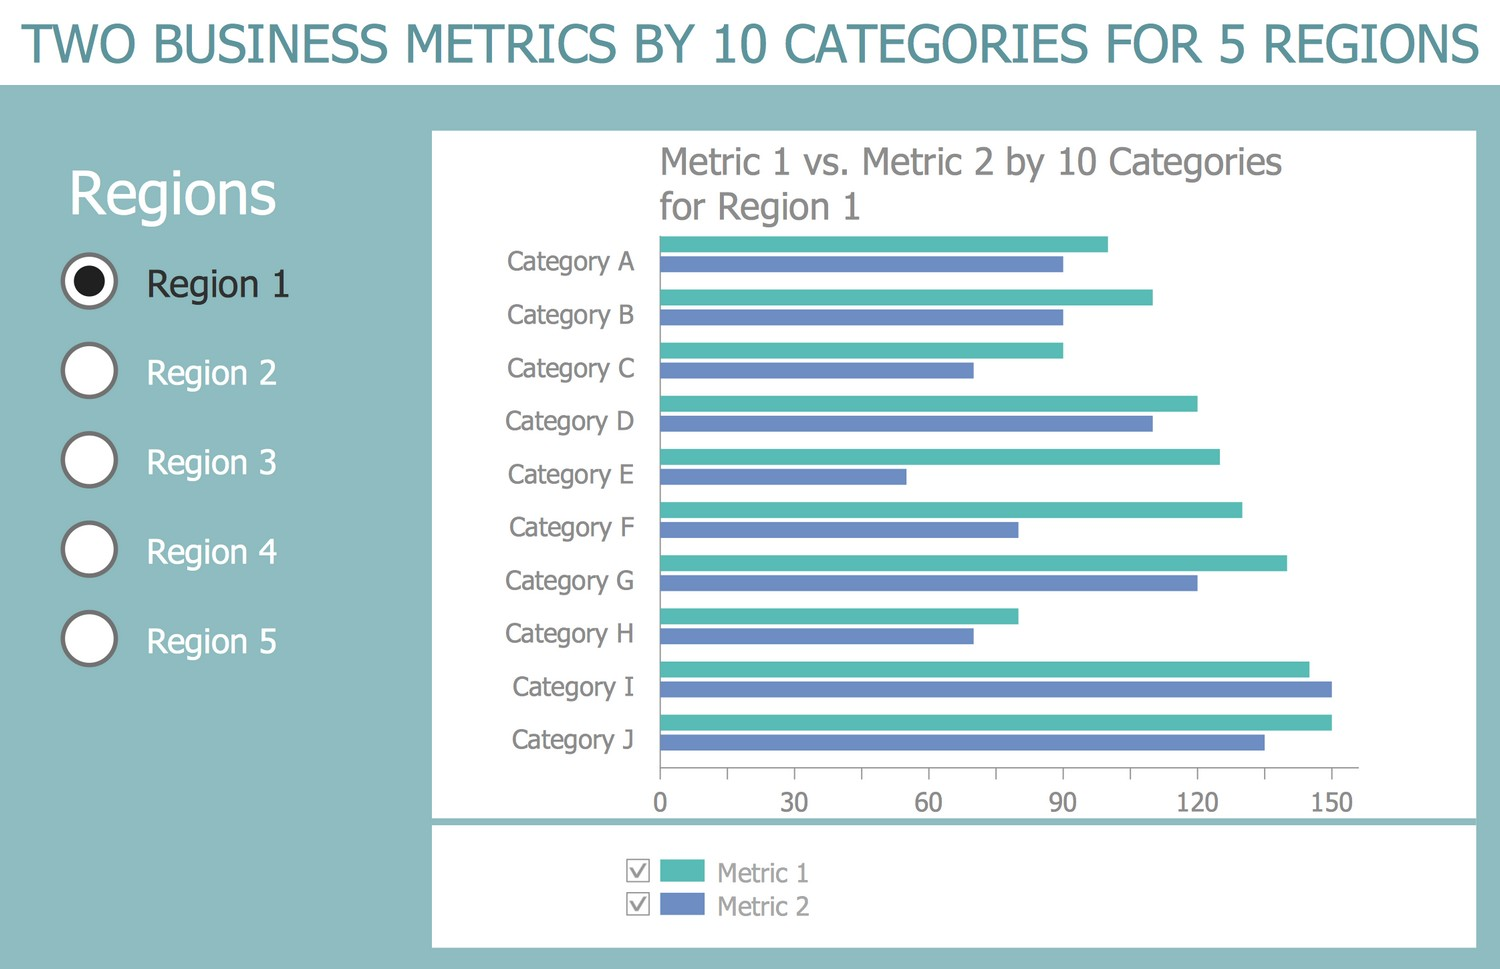 Business Intelligence Dashboard Template - Two Business Metrics by 10 Categories for 5 Regions